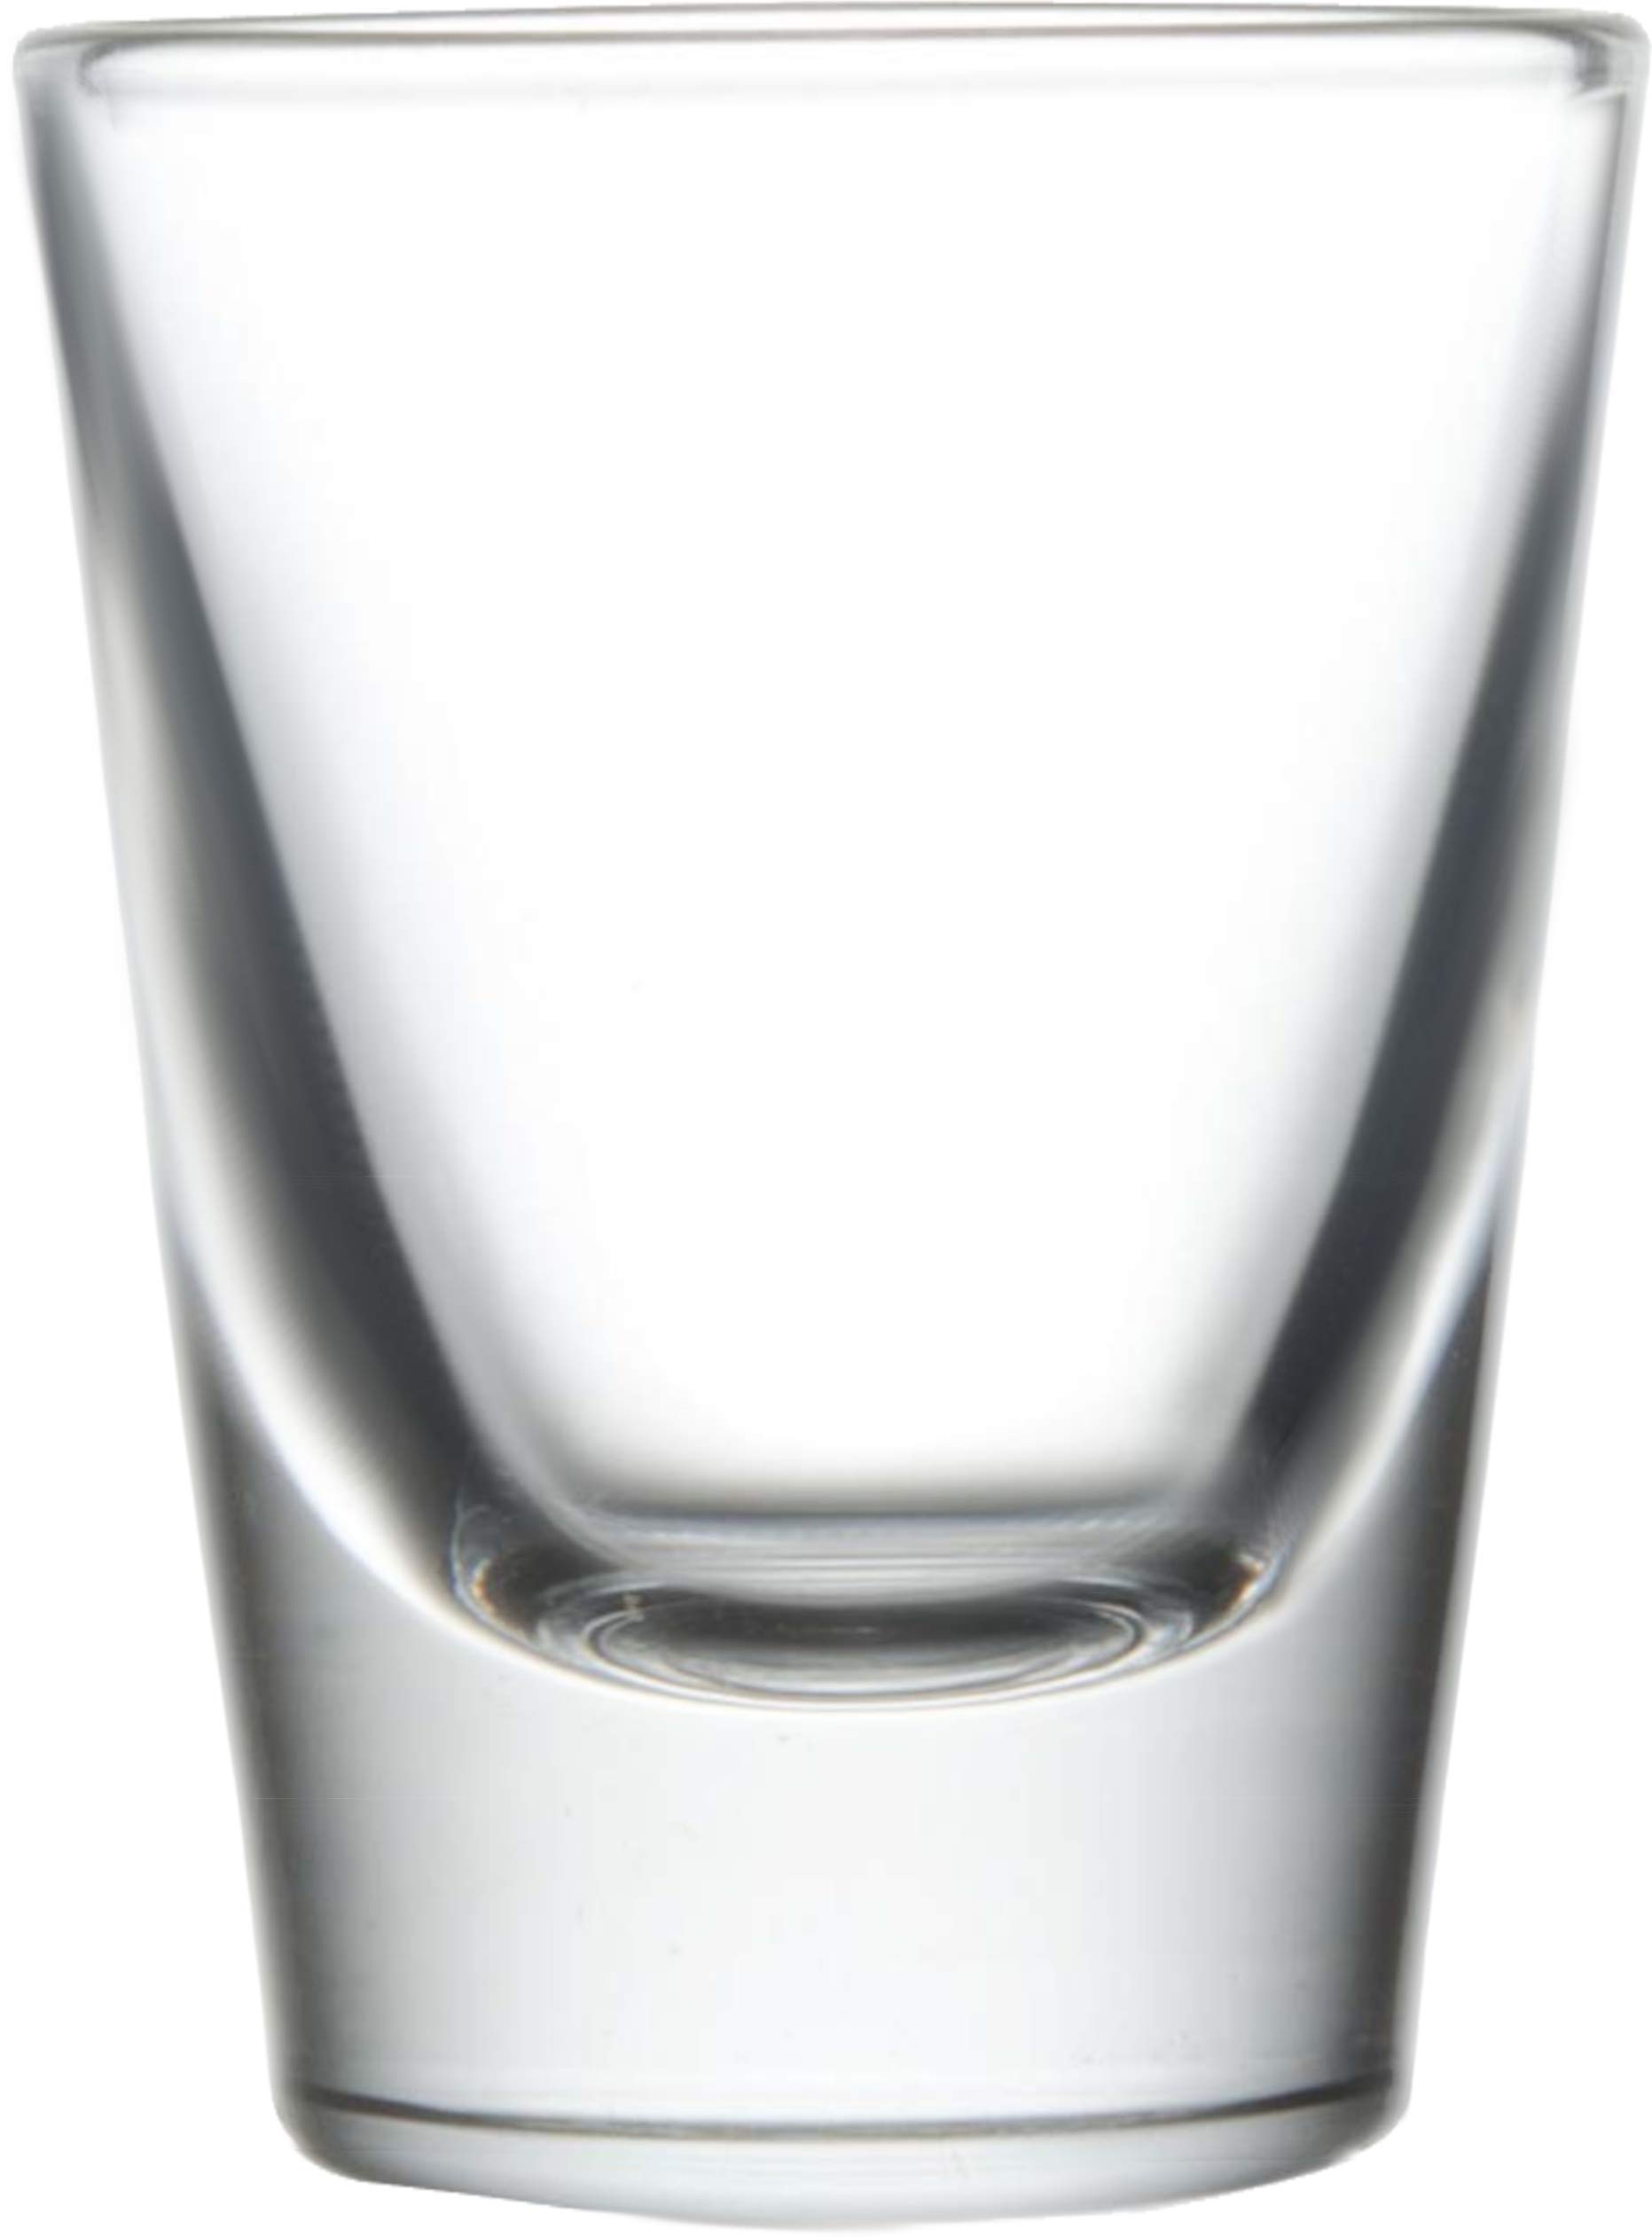 Circleware 042735 Huge Set of 36, Austria Shot Heavy Base Drinking Whiskey Glass Glassware Cups for Vodka, Brandy, Bourbon & Best Selling Liquor Beverages, Limited Edition, 36pc by Circleware (Image #2)